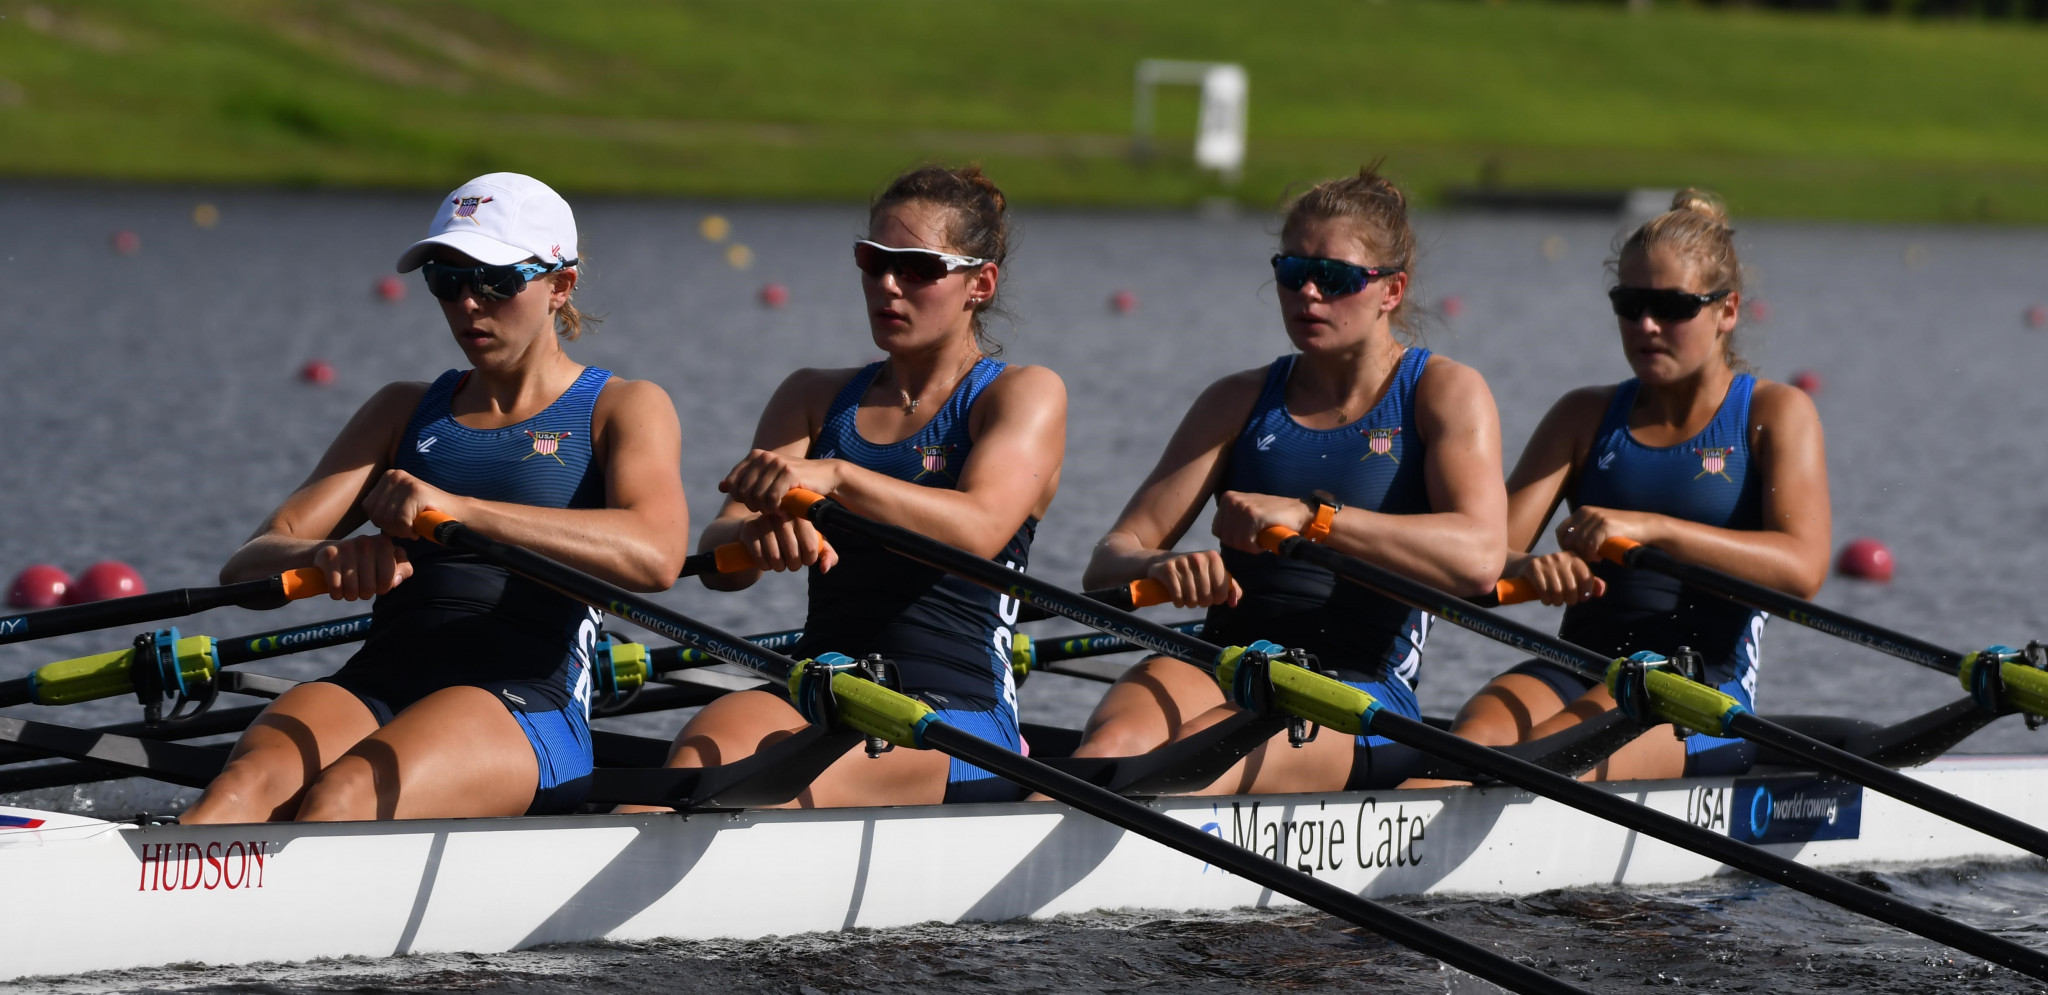 Competition began in Sarasota-Bradenton in humid conditions ©USRowing